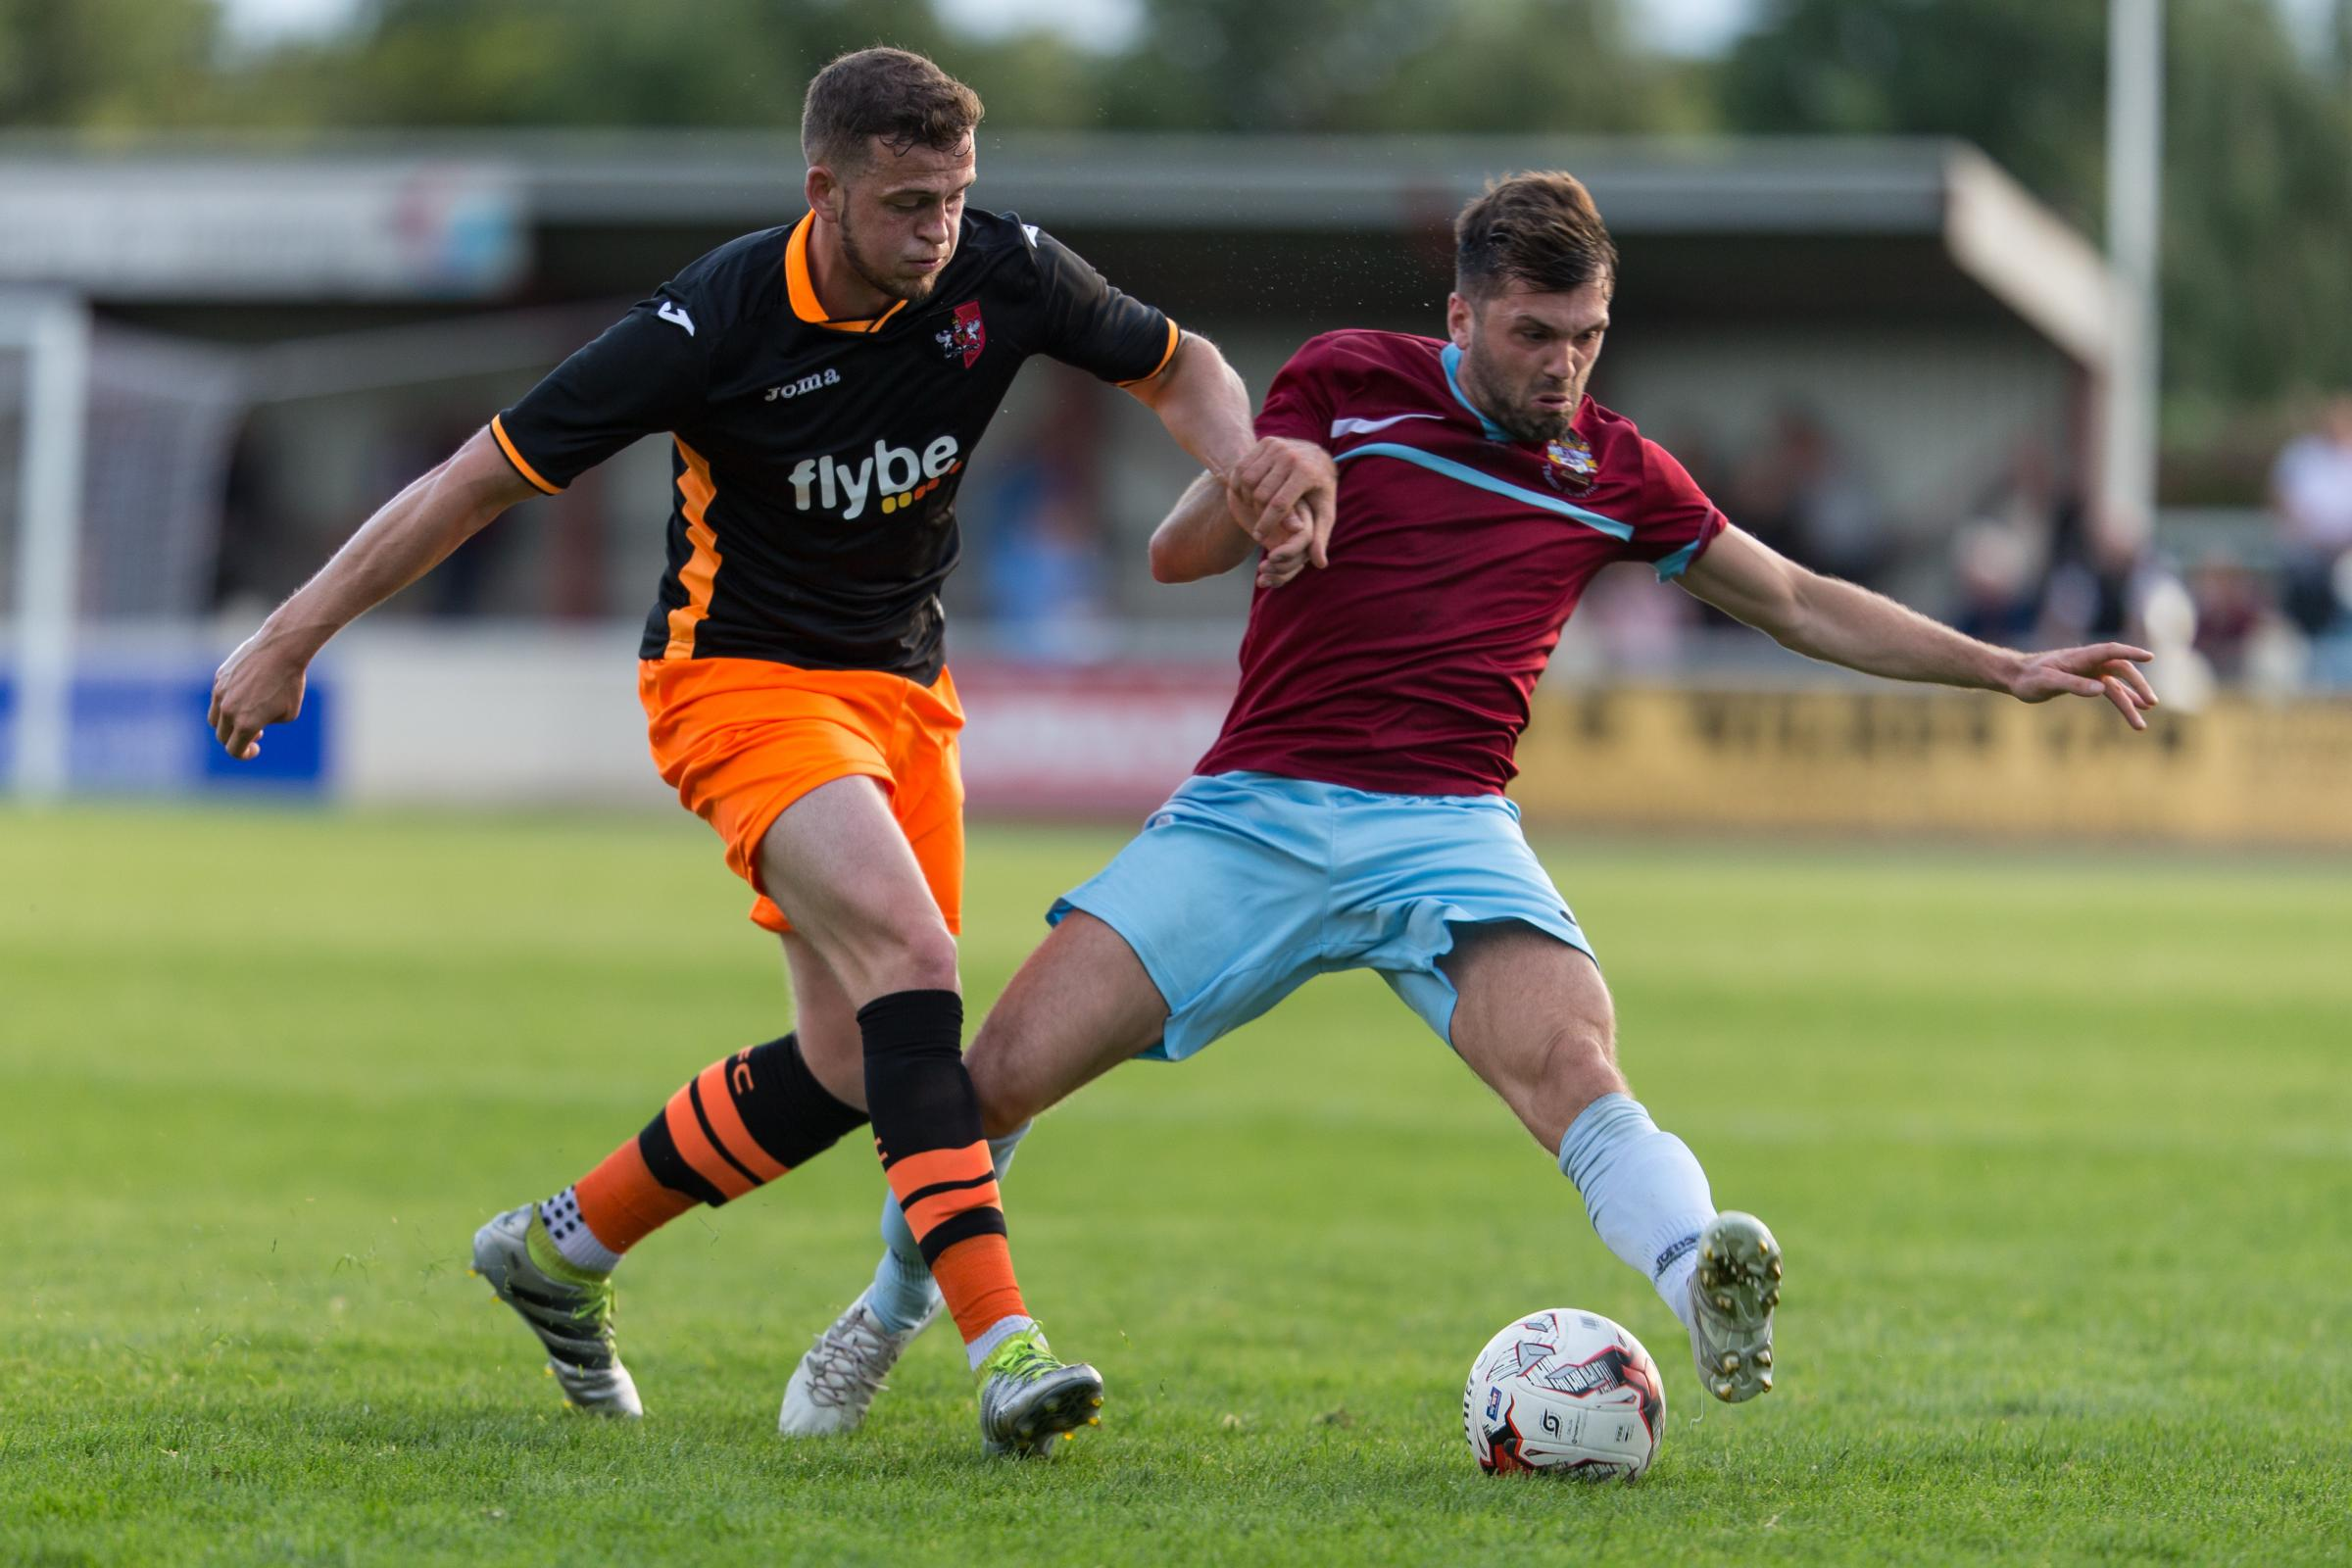 FAMILIAR OPPONENTS: Action from a pre-season friendly between Taunton Town and Exeter City